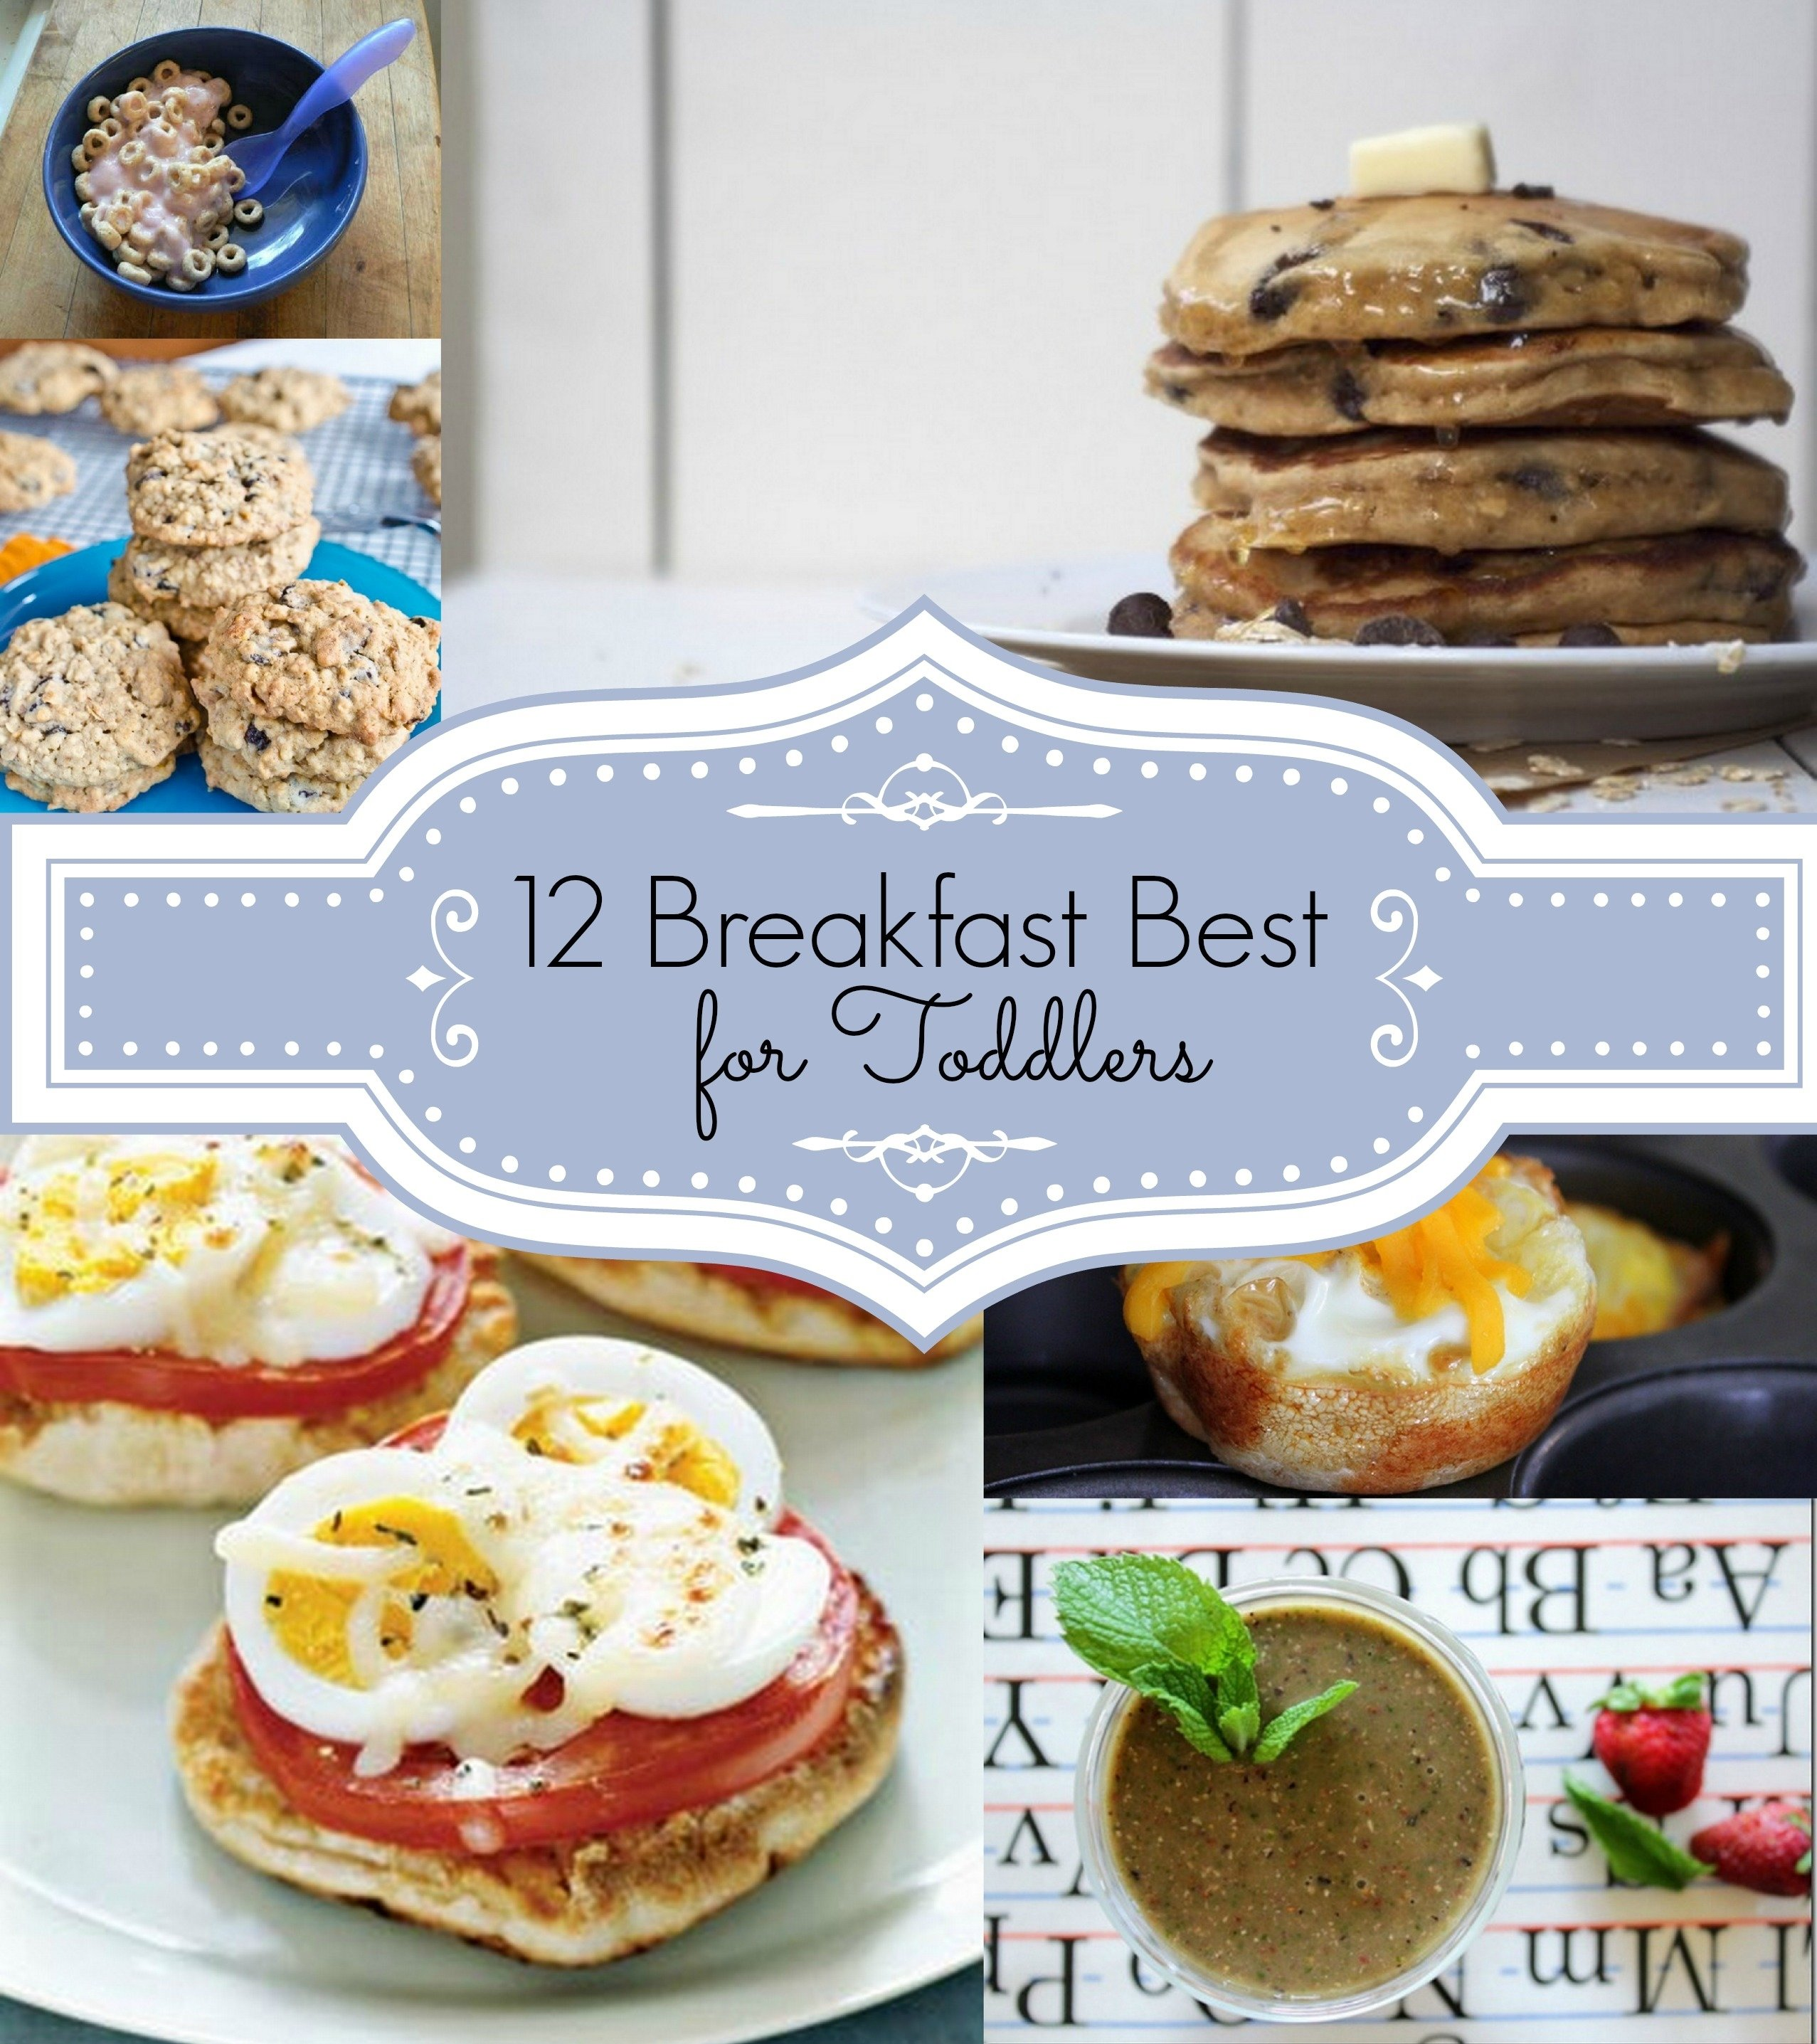 10 Most Recommended Healthy Breakfast Ideas For Toddlers 12 healthy breakfast best for toddlers disney baby babble reads 2020